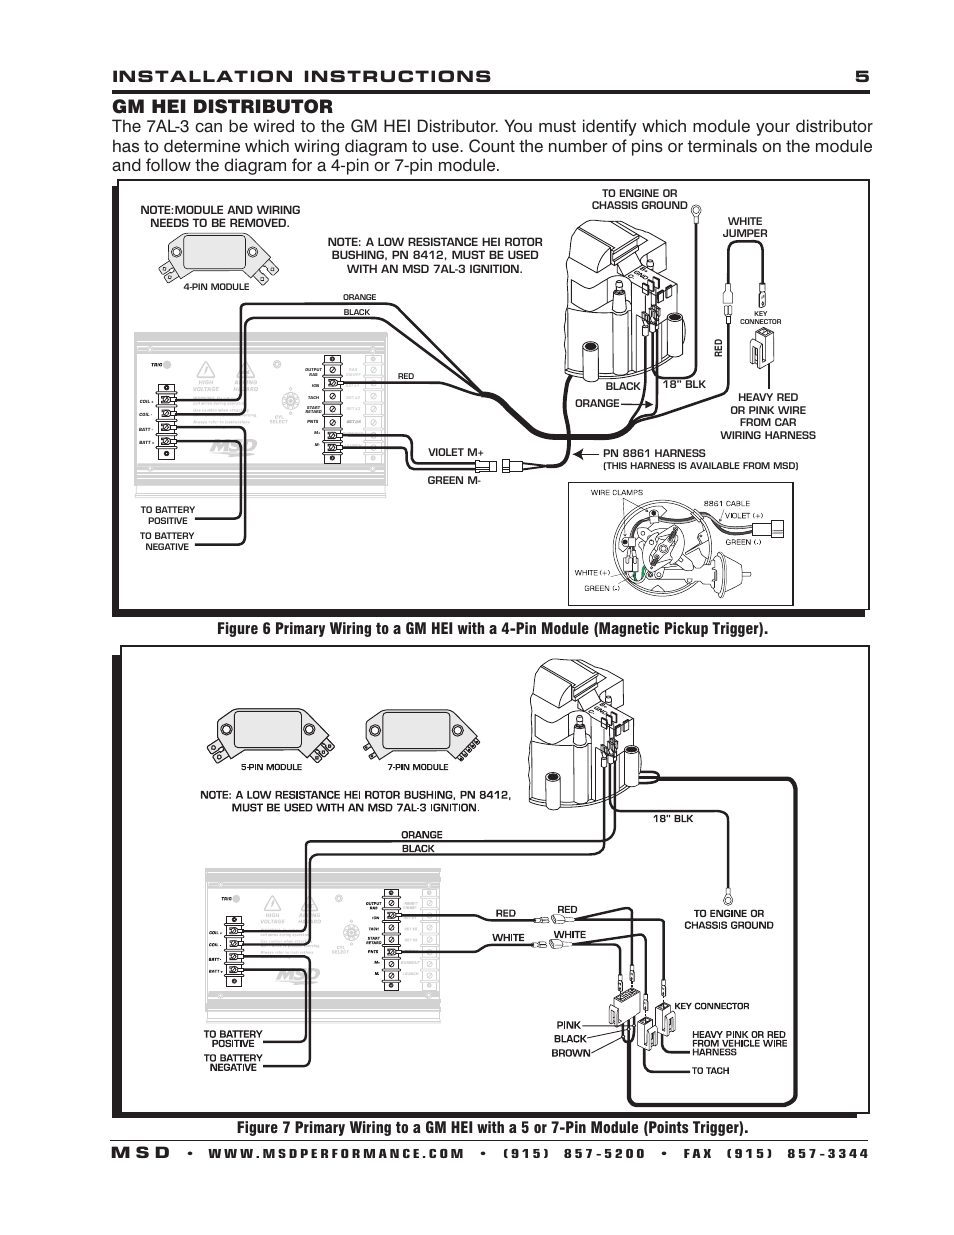 msd al wiring diagram wiring diagram and schematic design msd 8984 starter saver w signal ilizer performance s